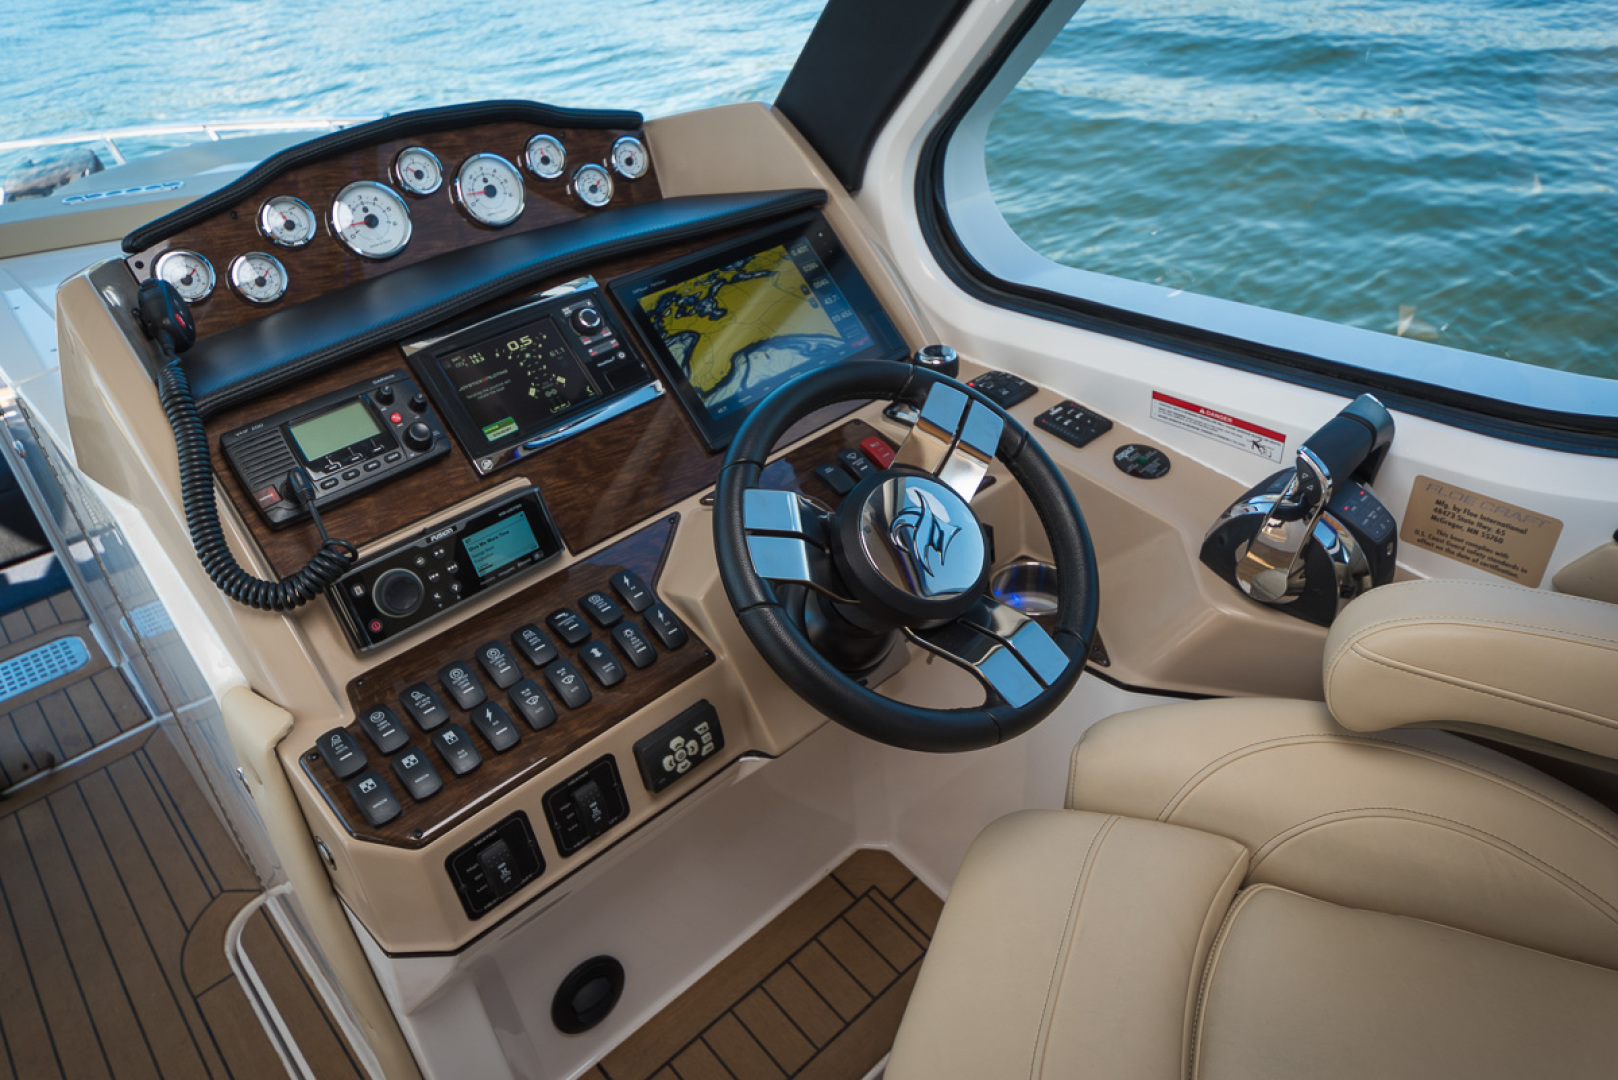 Picture Of: 39' Floe Craft Afina 3950 2019 Yacht For Sale   2 of 32